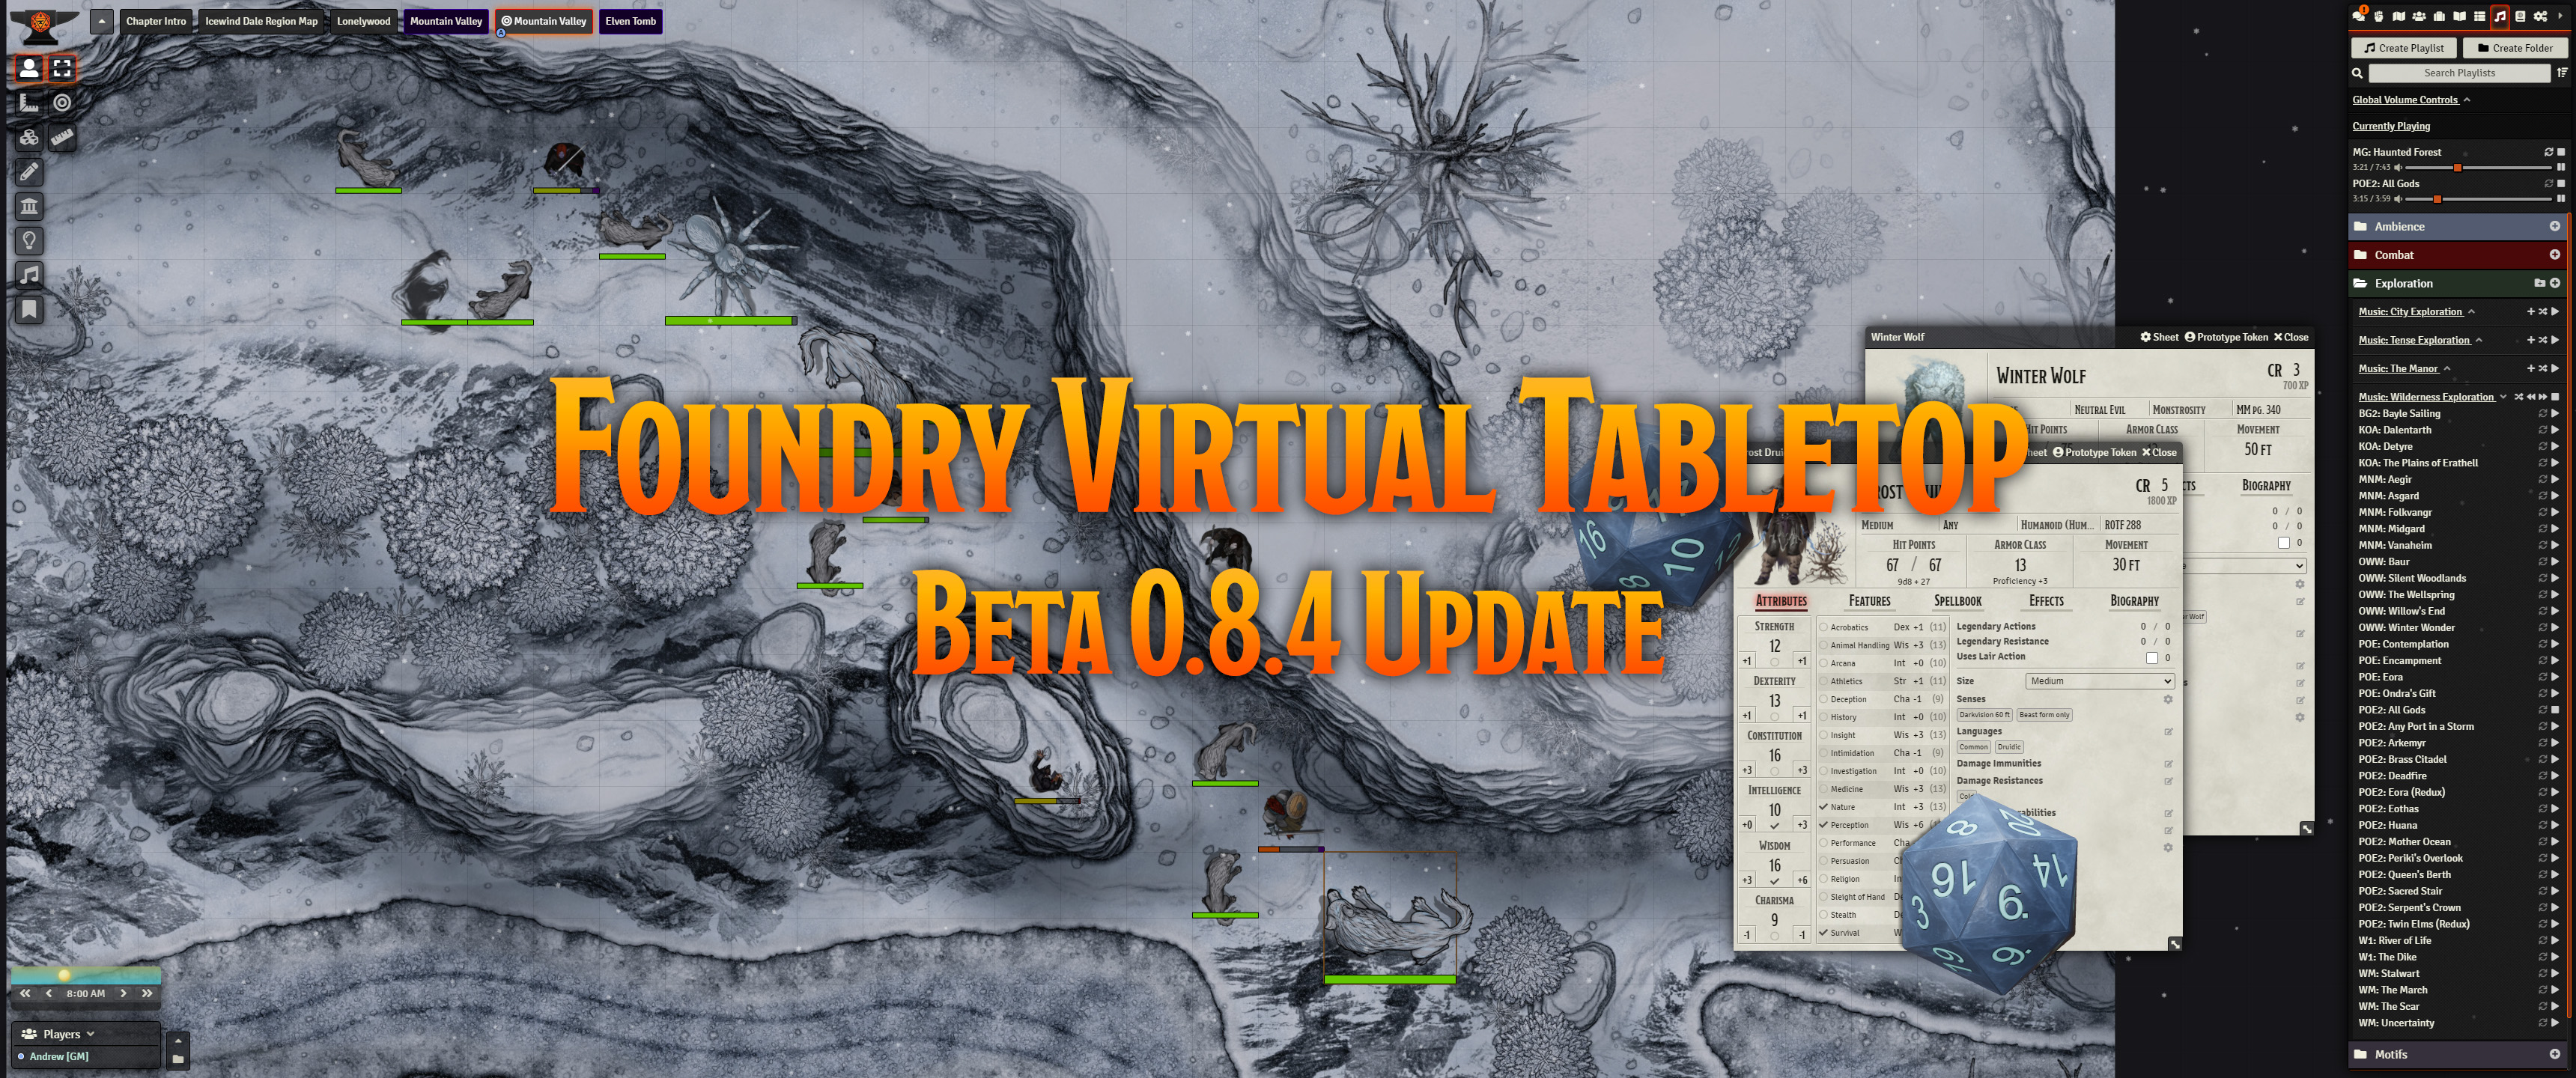 Release Notes for the Foundry Virtual Tabletop 0.8.4 version